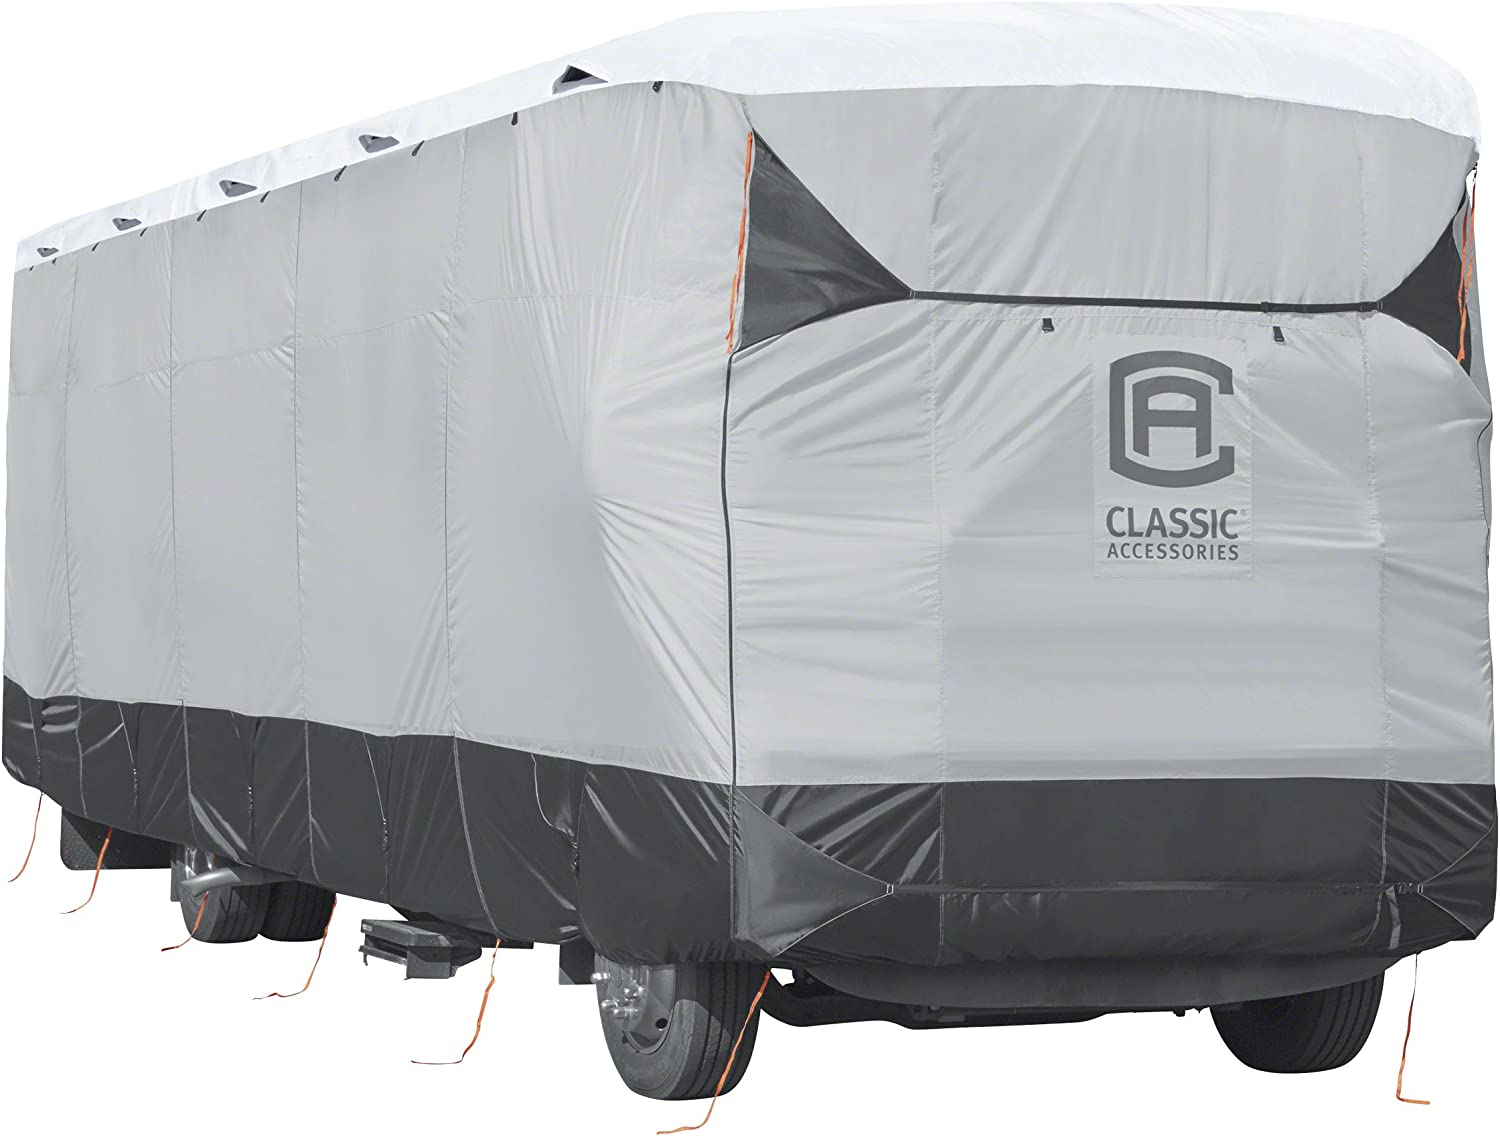 Classic Accessories Over Drive SkyShield Class Cover RV Deluxe Sale item A Sales results No. 1